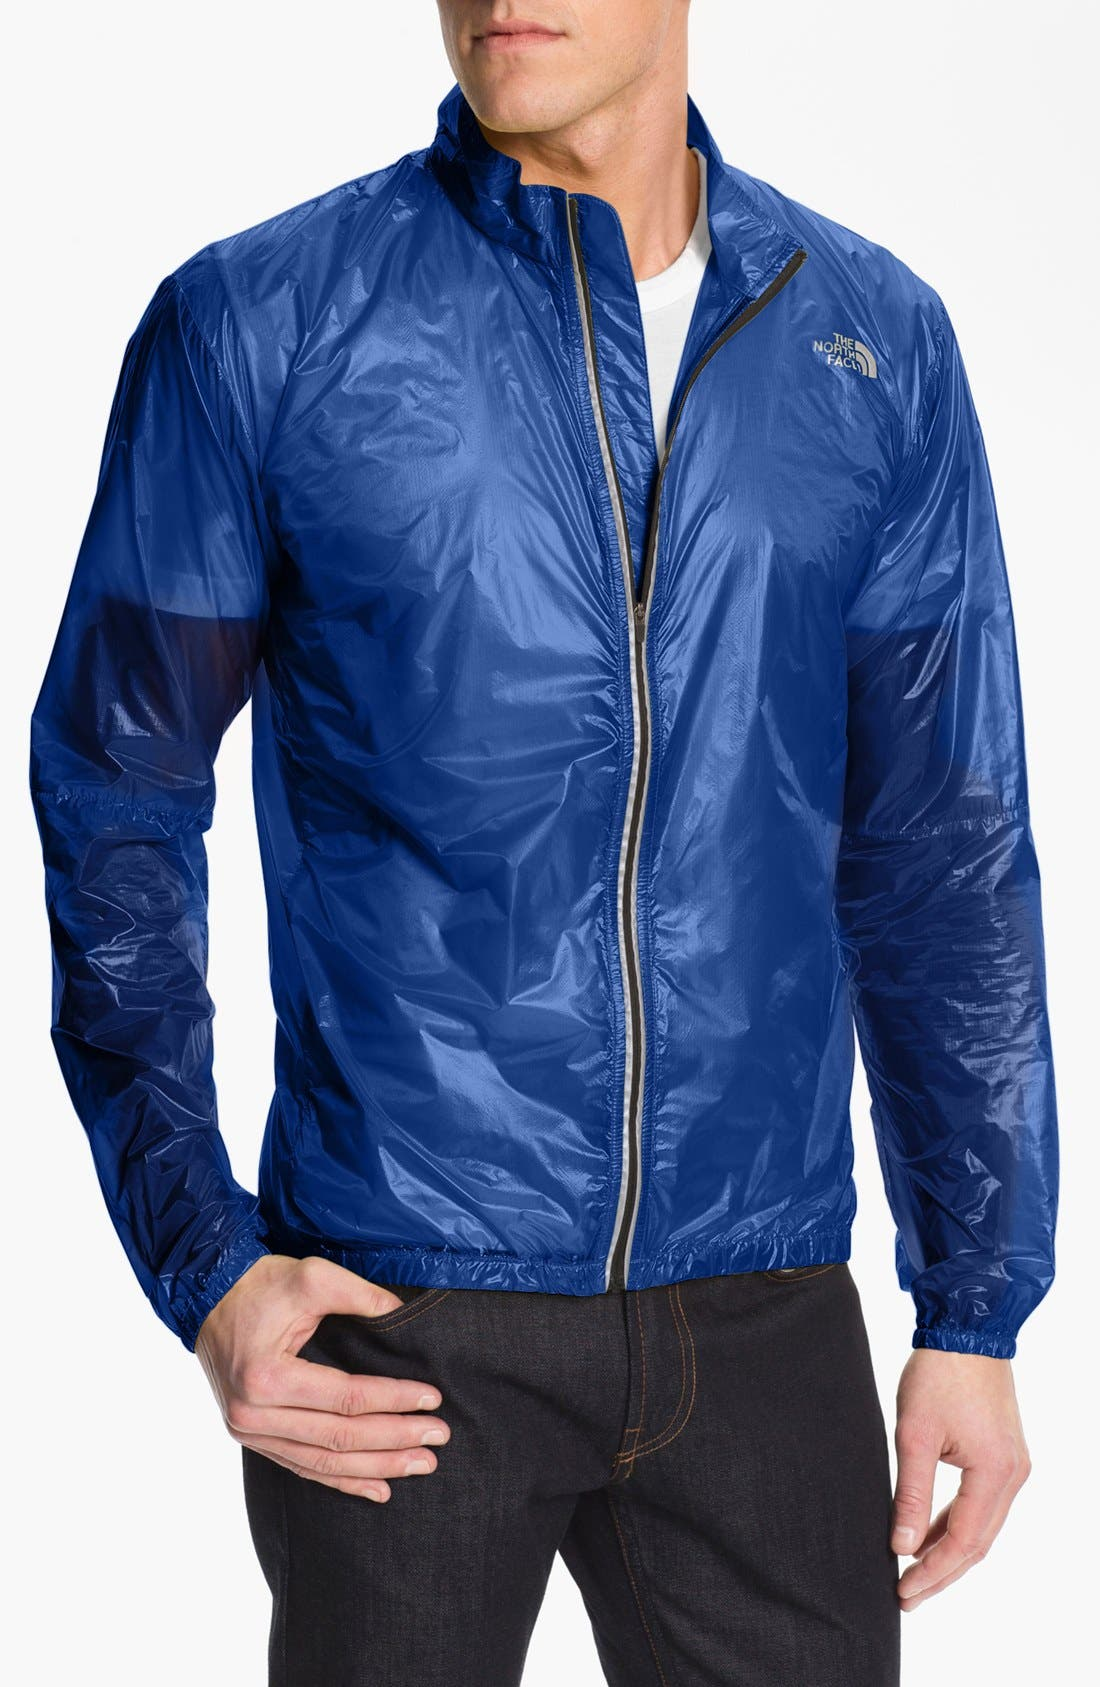 Alternate Image 1 Selected - The North Face 'Accomack' Lightweight Jacket